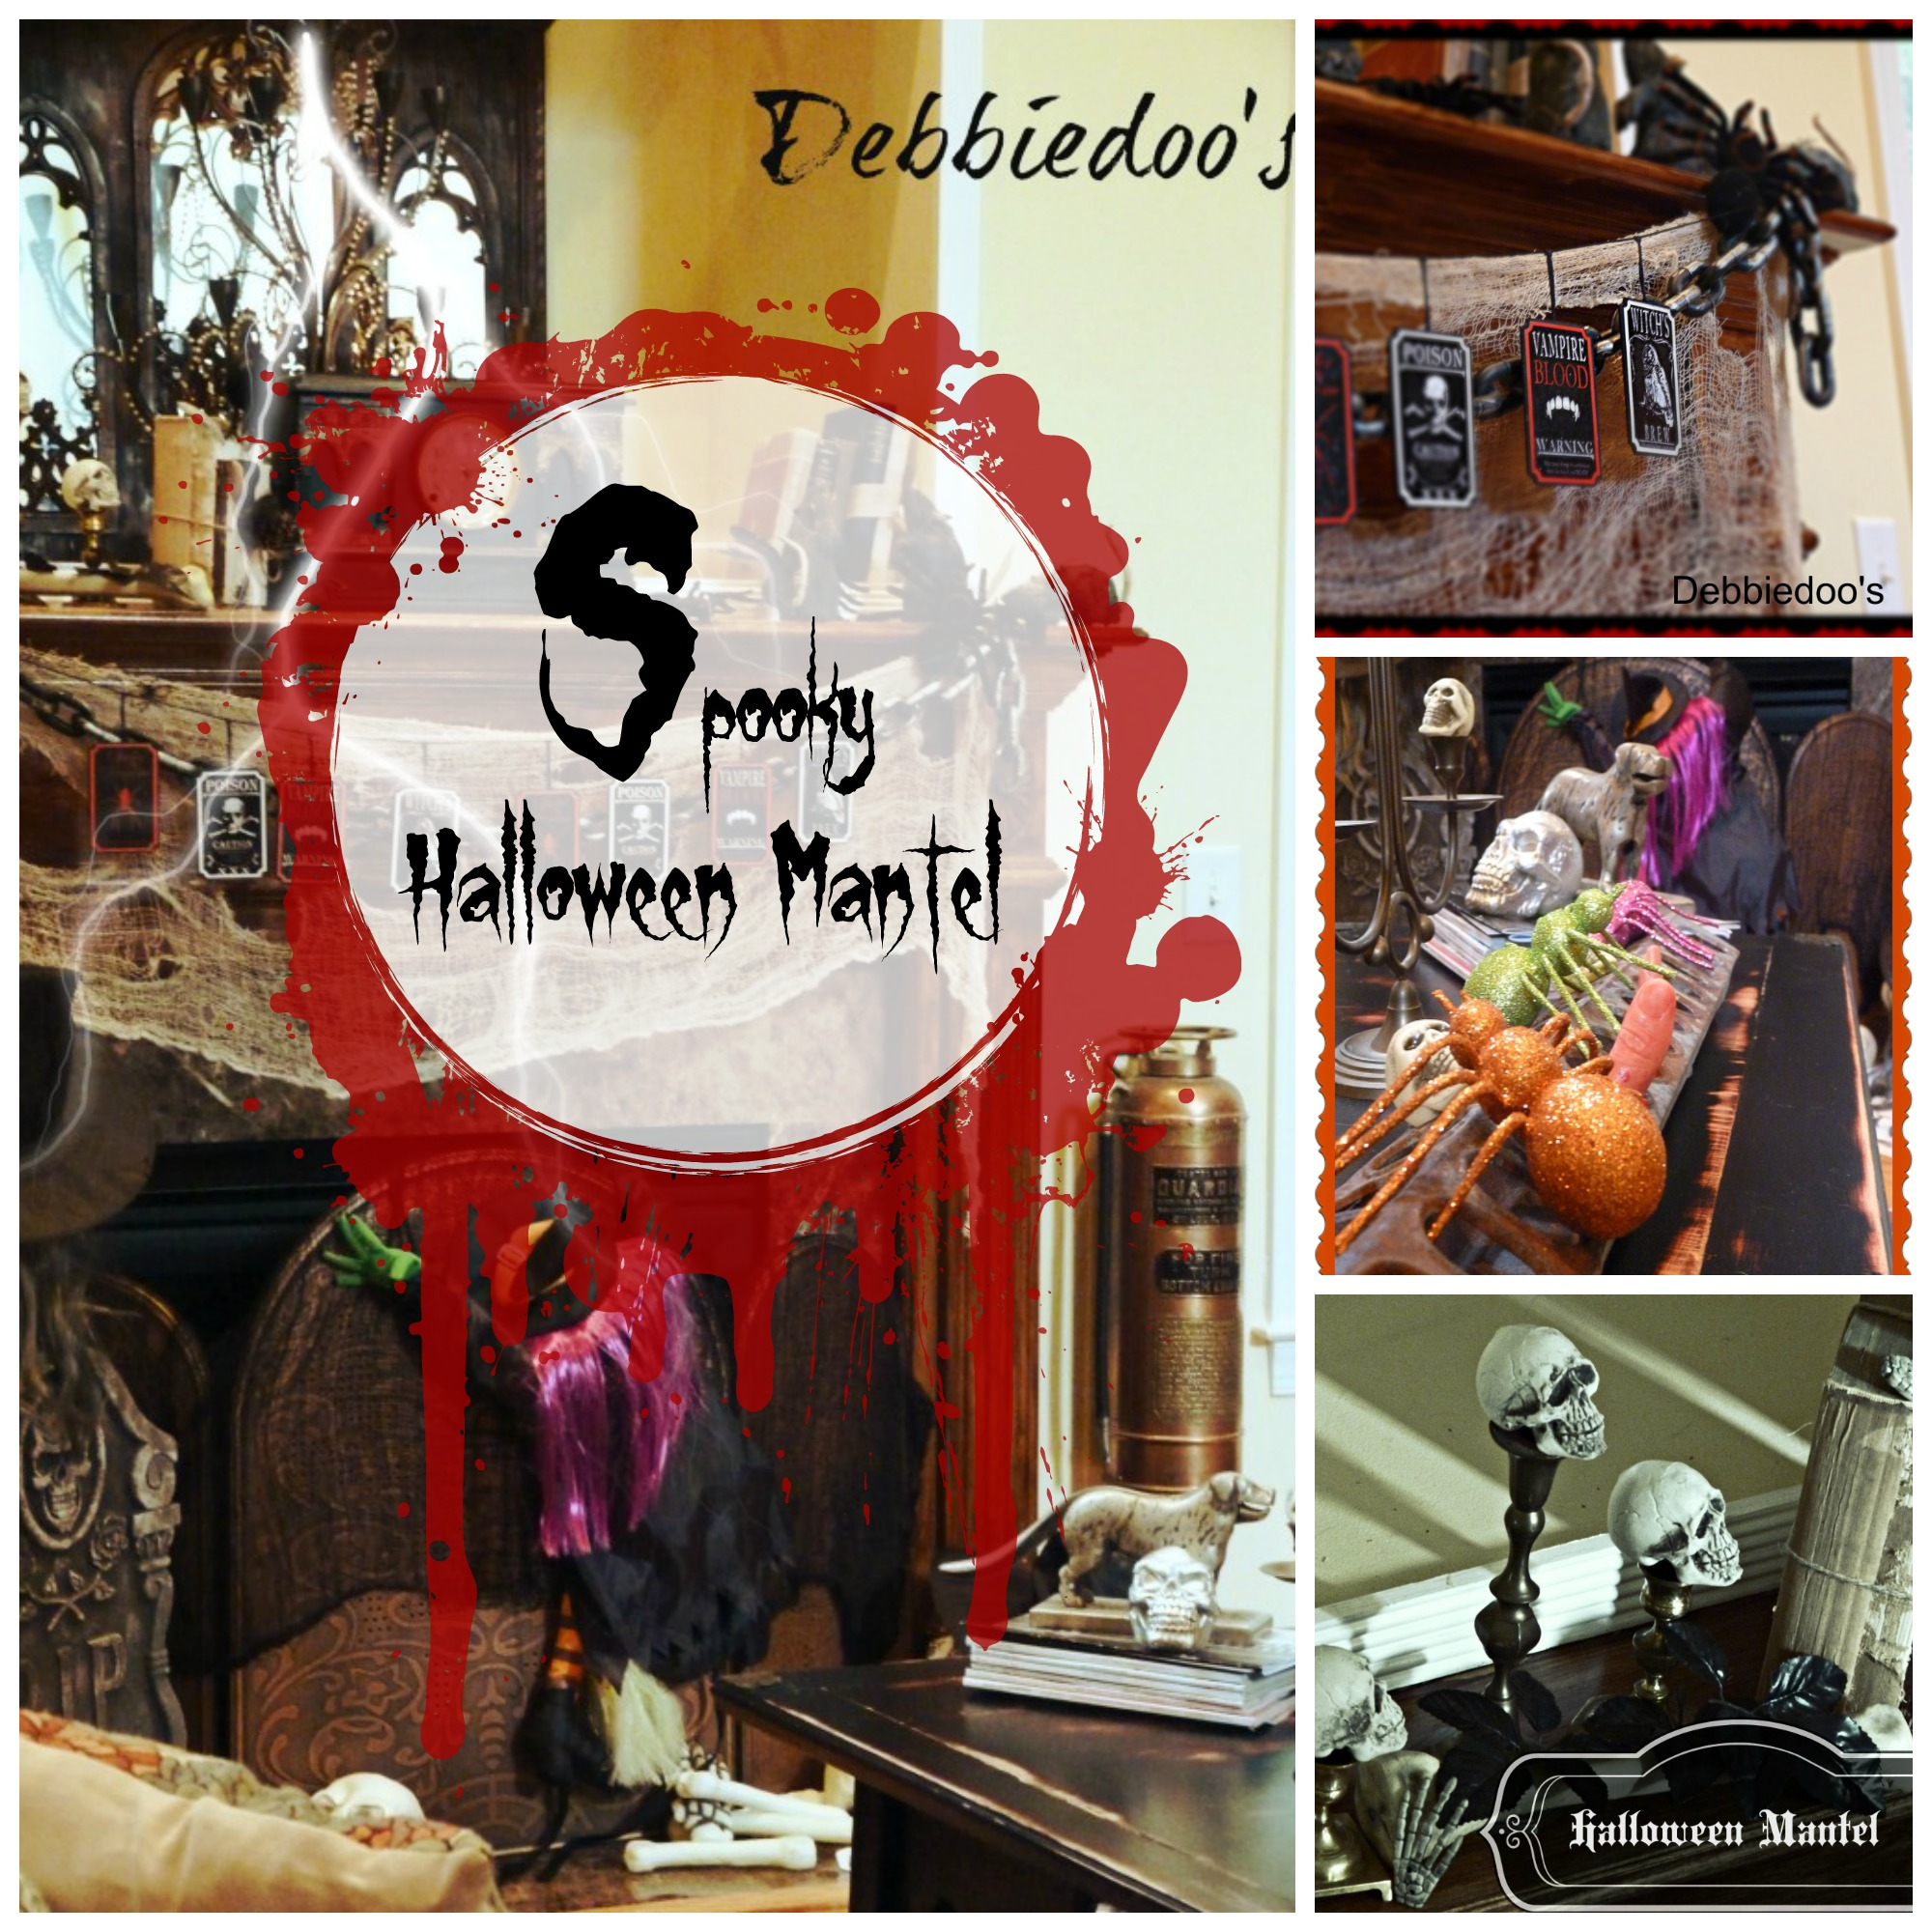 Spooky Halloween mantel with dollar tree decor